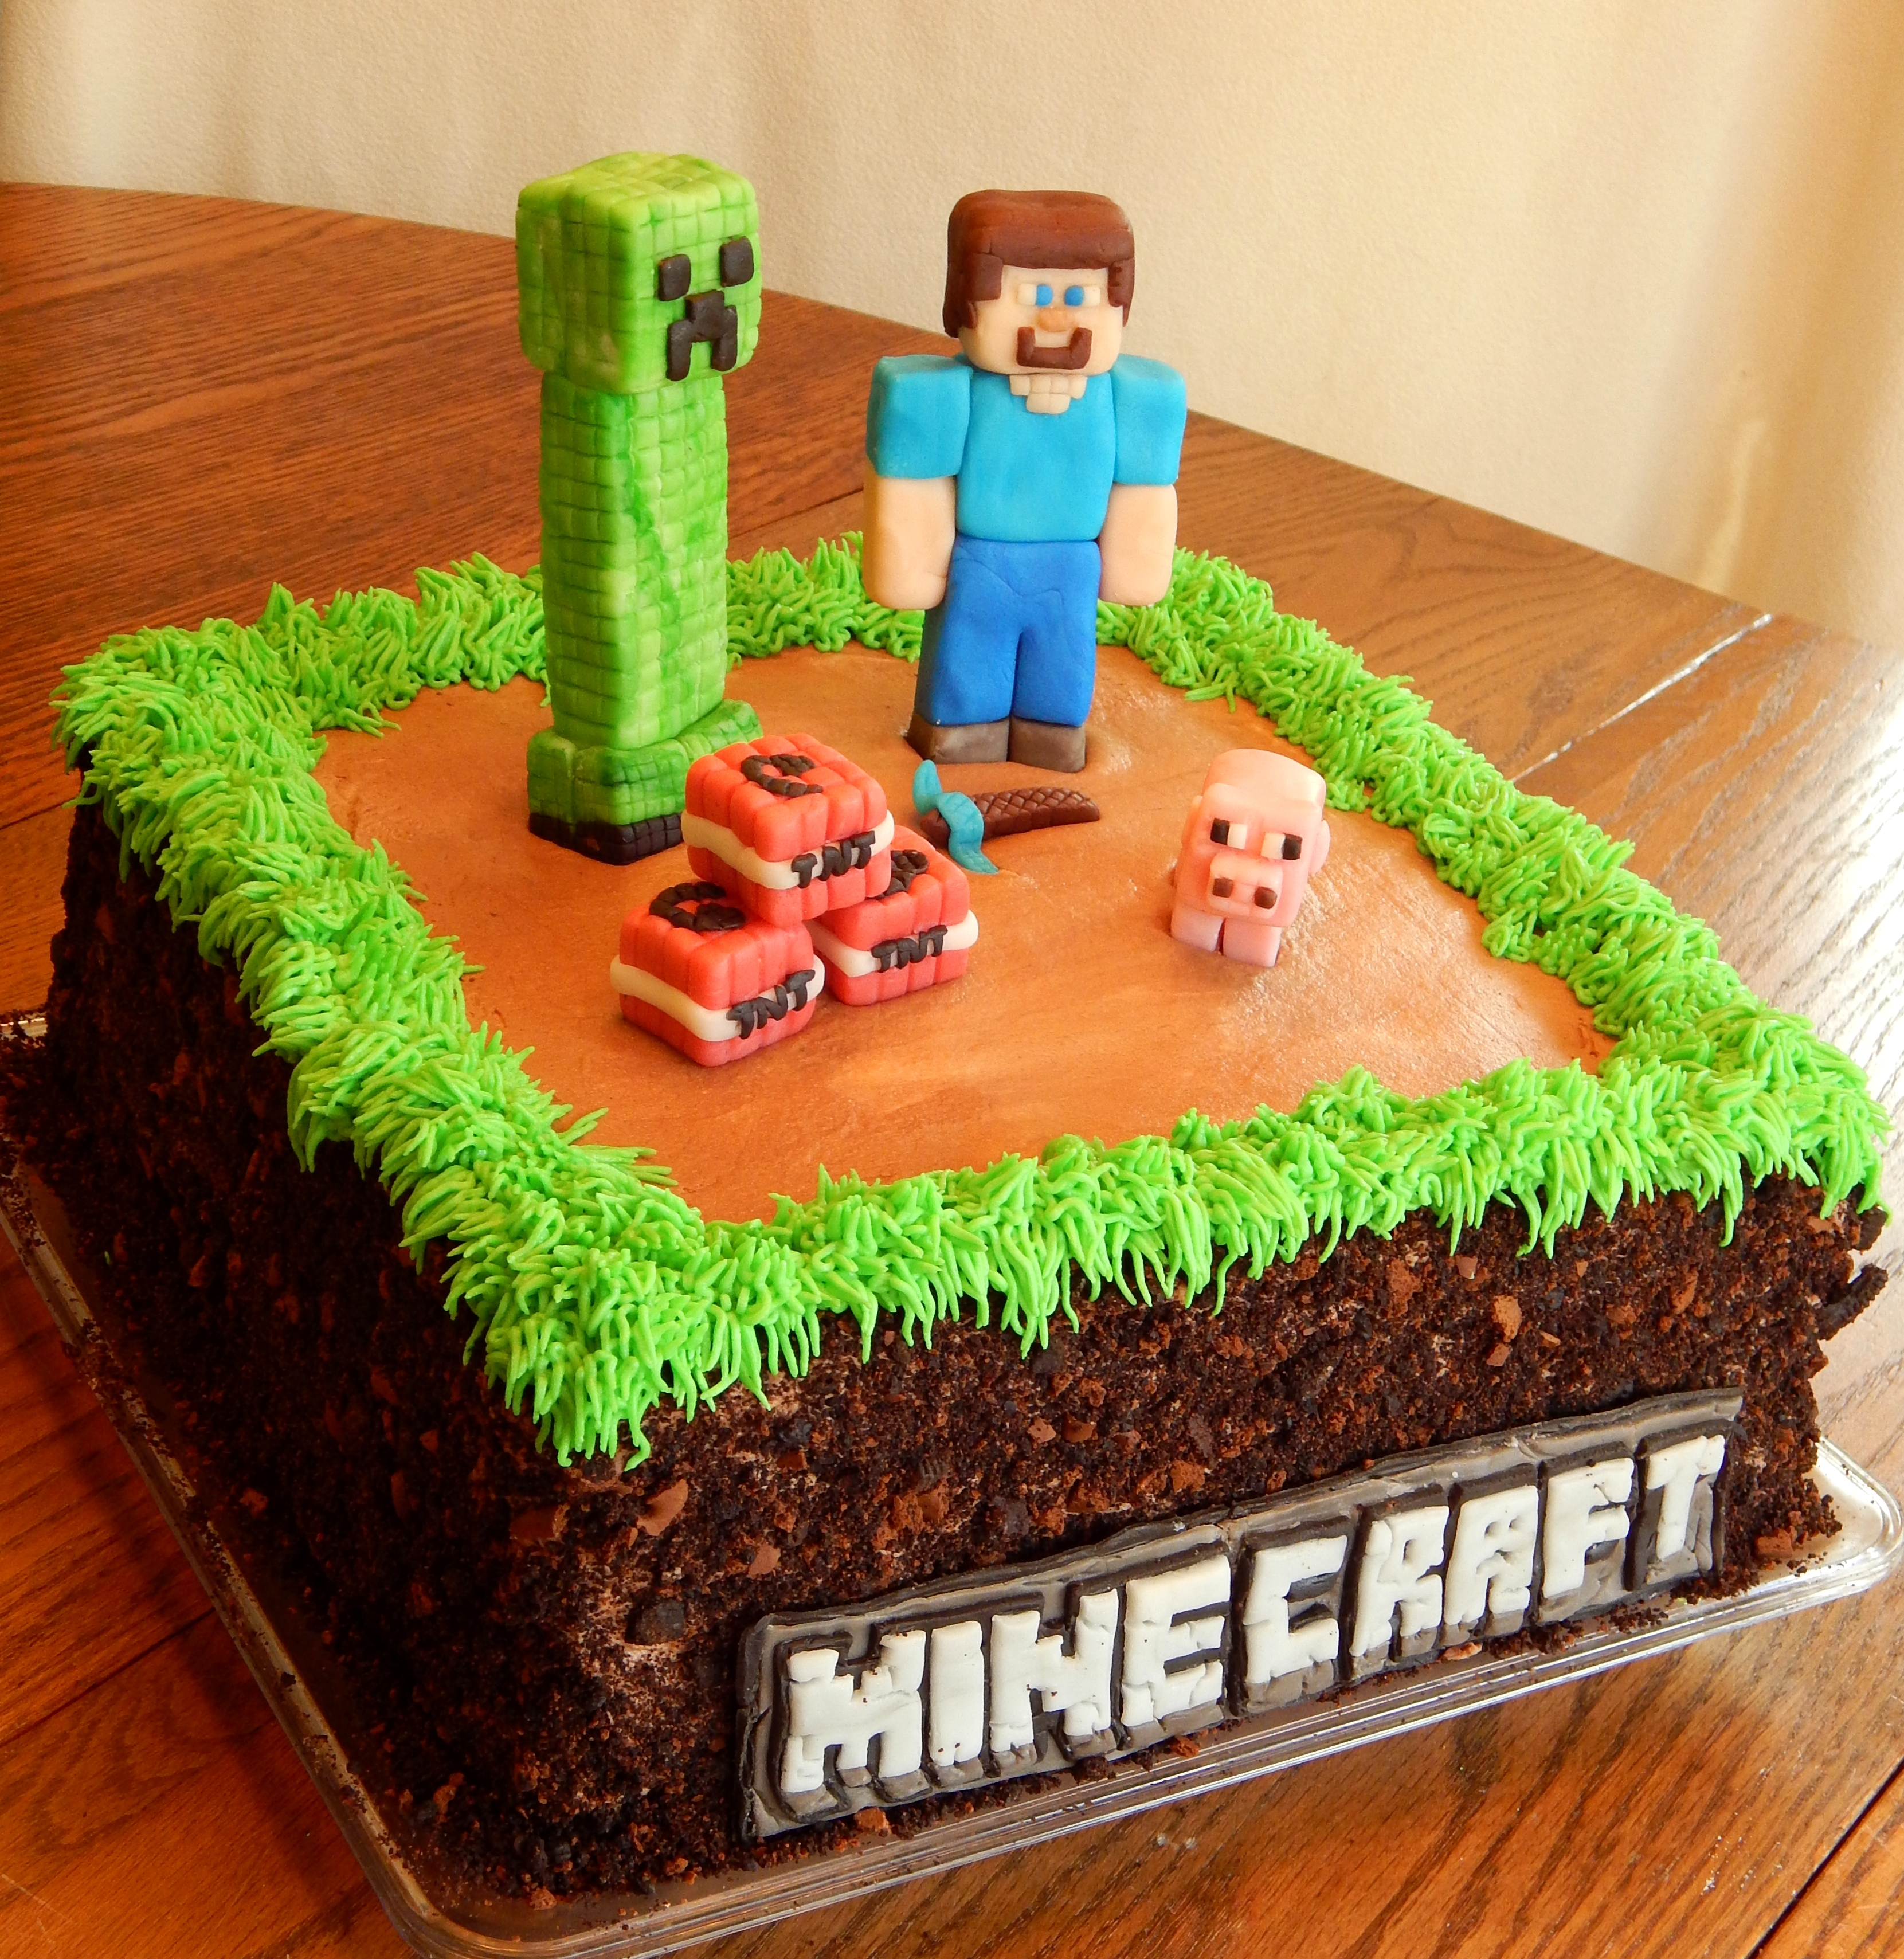 How to Make a Cake in Minecraft » Safe Tutorial